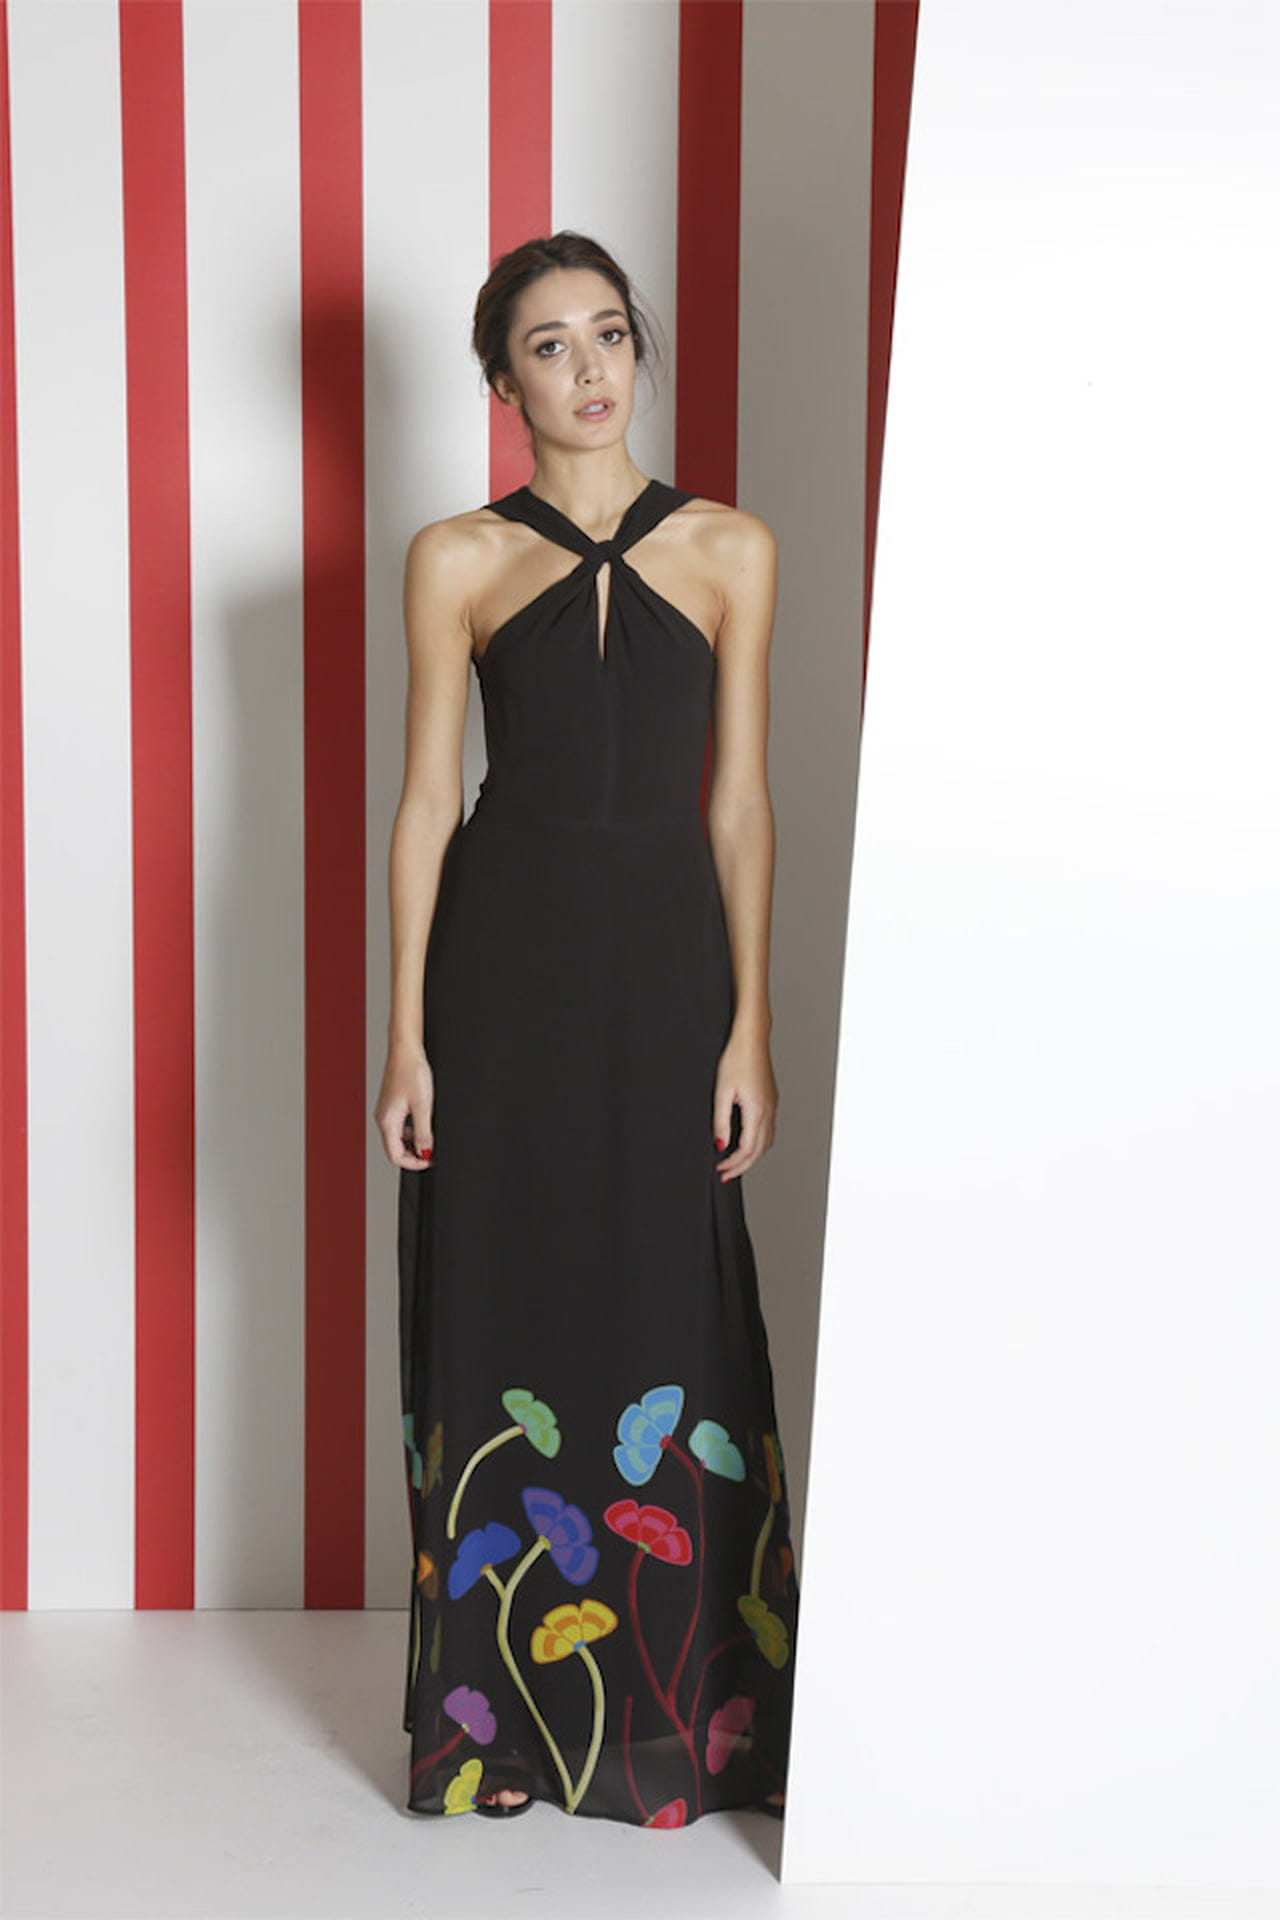 Il long dress total black di Sandro Ferrone è reso sbarazzino dalla  colorata fantasia floreale. © Sandro Ferrone 23e260b36e5